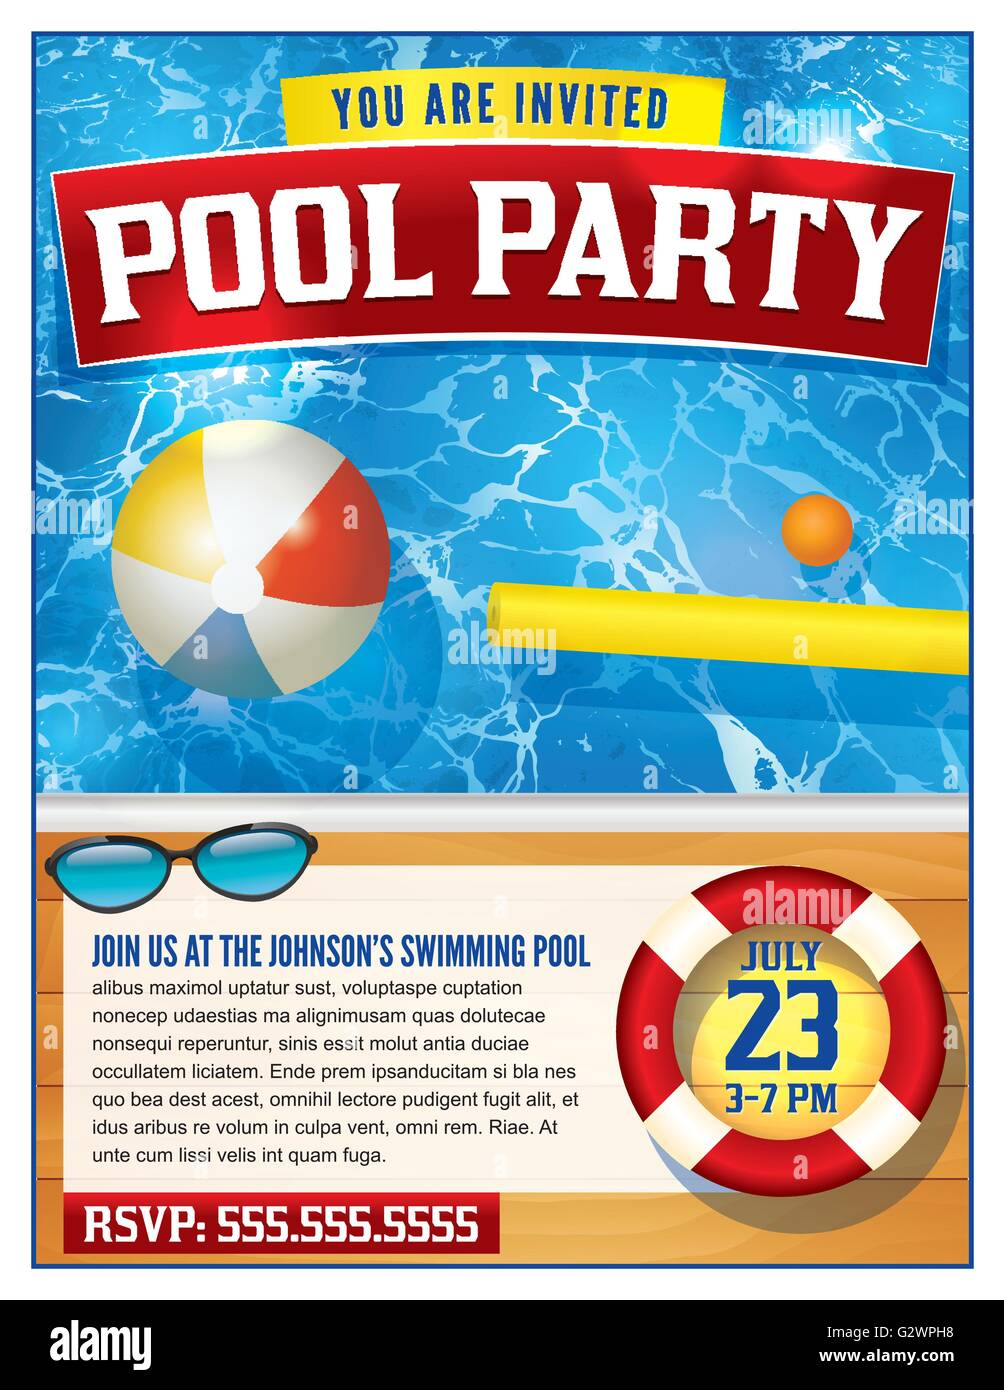 a template for a pool party invitation vector eps available a template for a pool party invitation vector eps 10 available